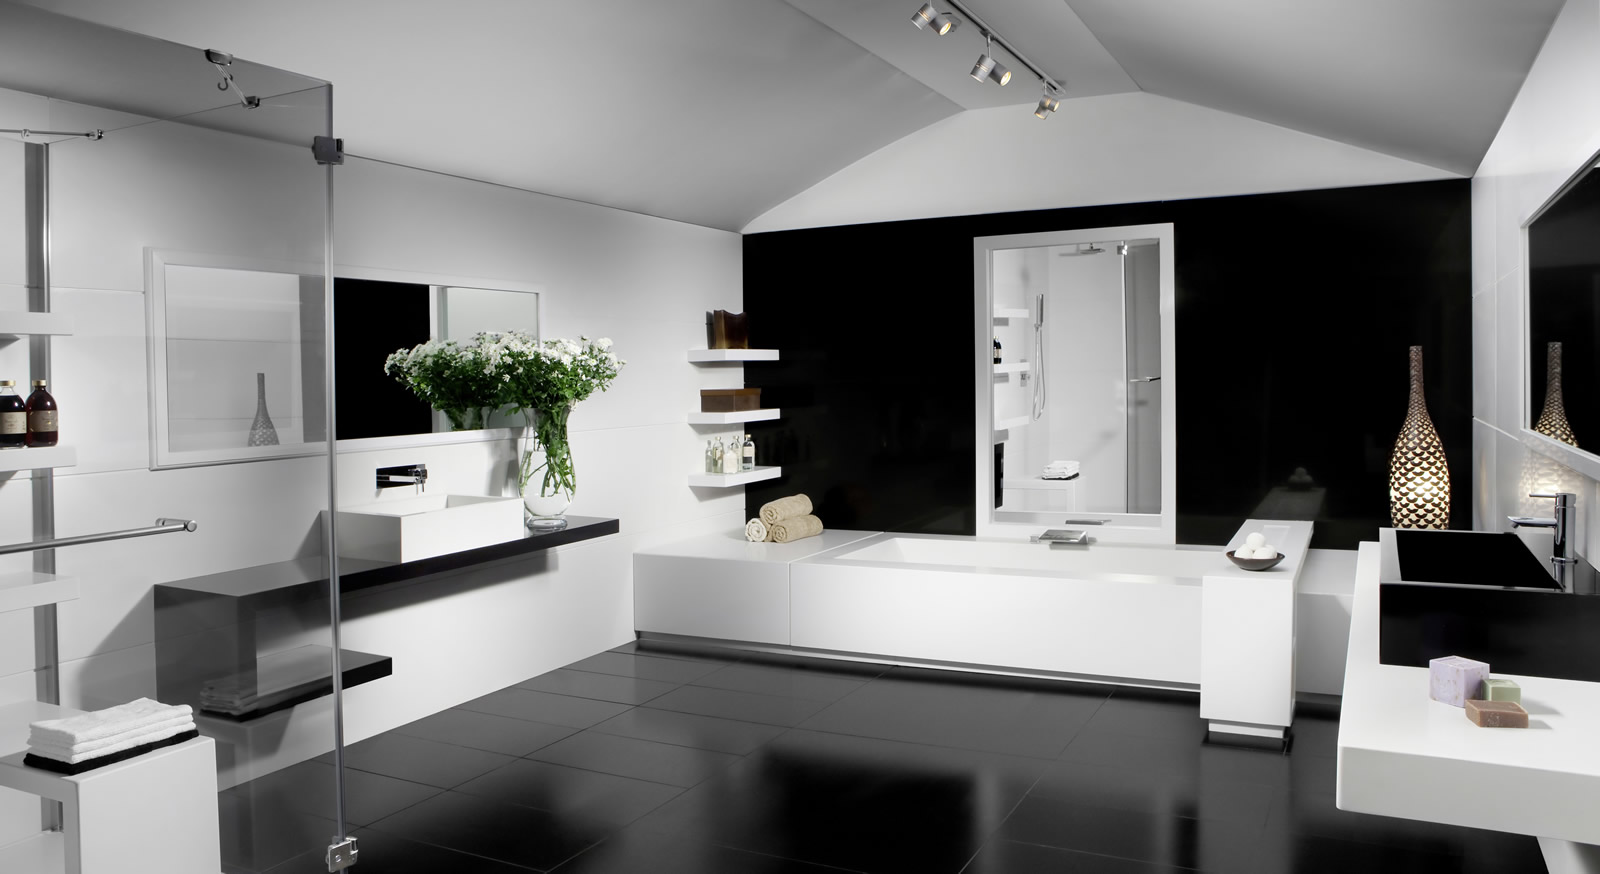 caesarstone classico die lebendige carsarstone classico. Black Bedroom Furniture Sets. Home Design Ideas